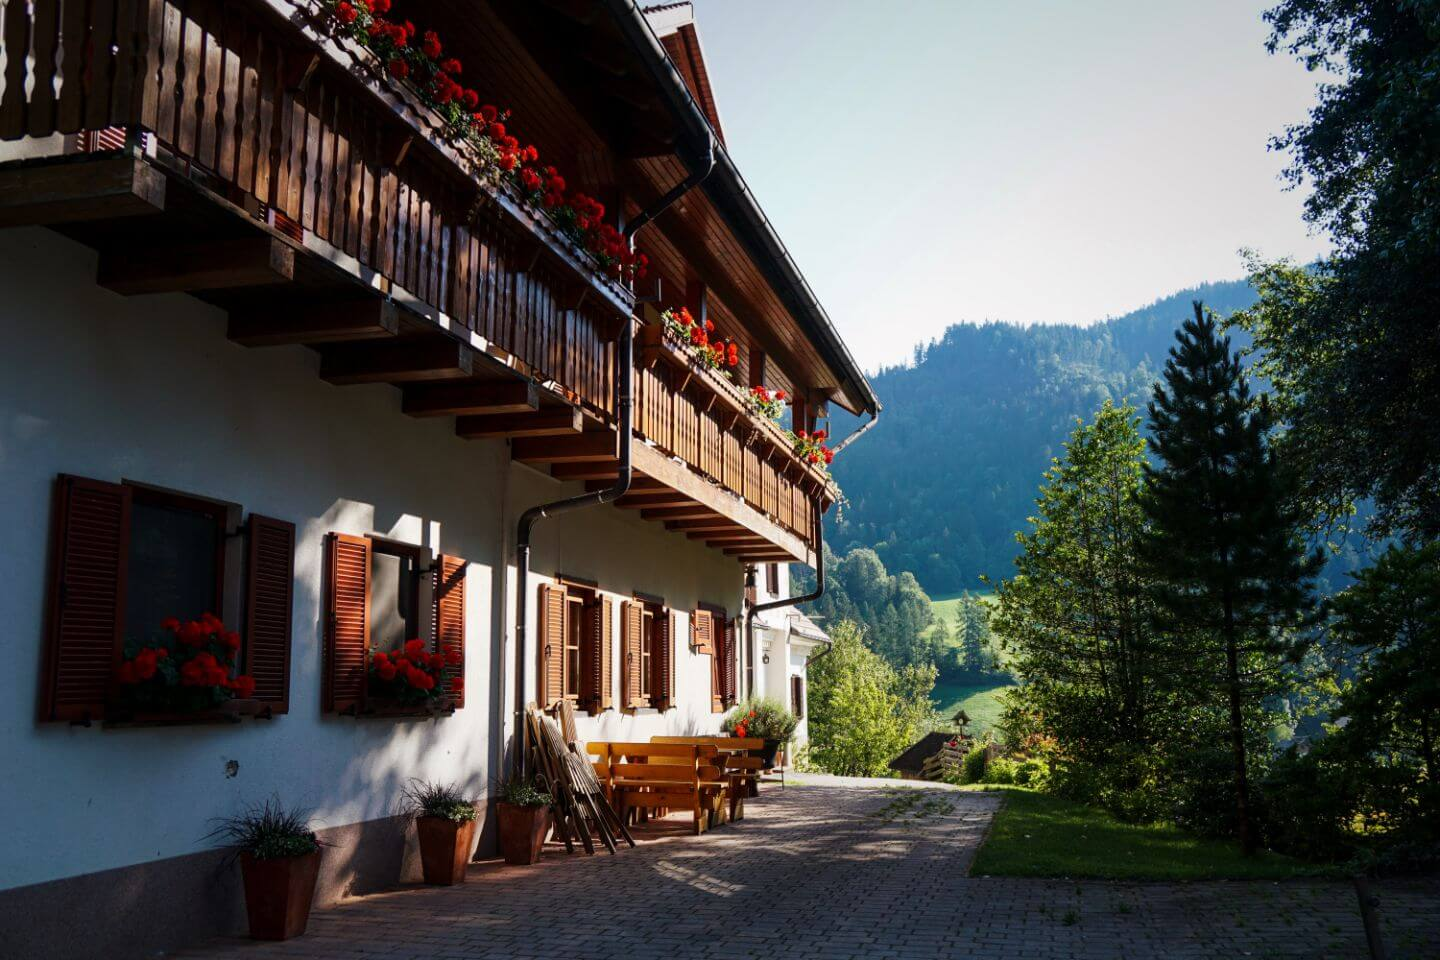 Tourist Farm Stoglej, Hidden Gems in Slovenia